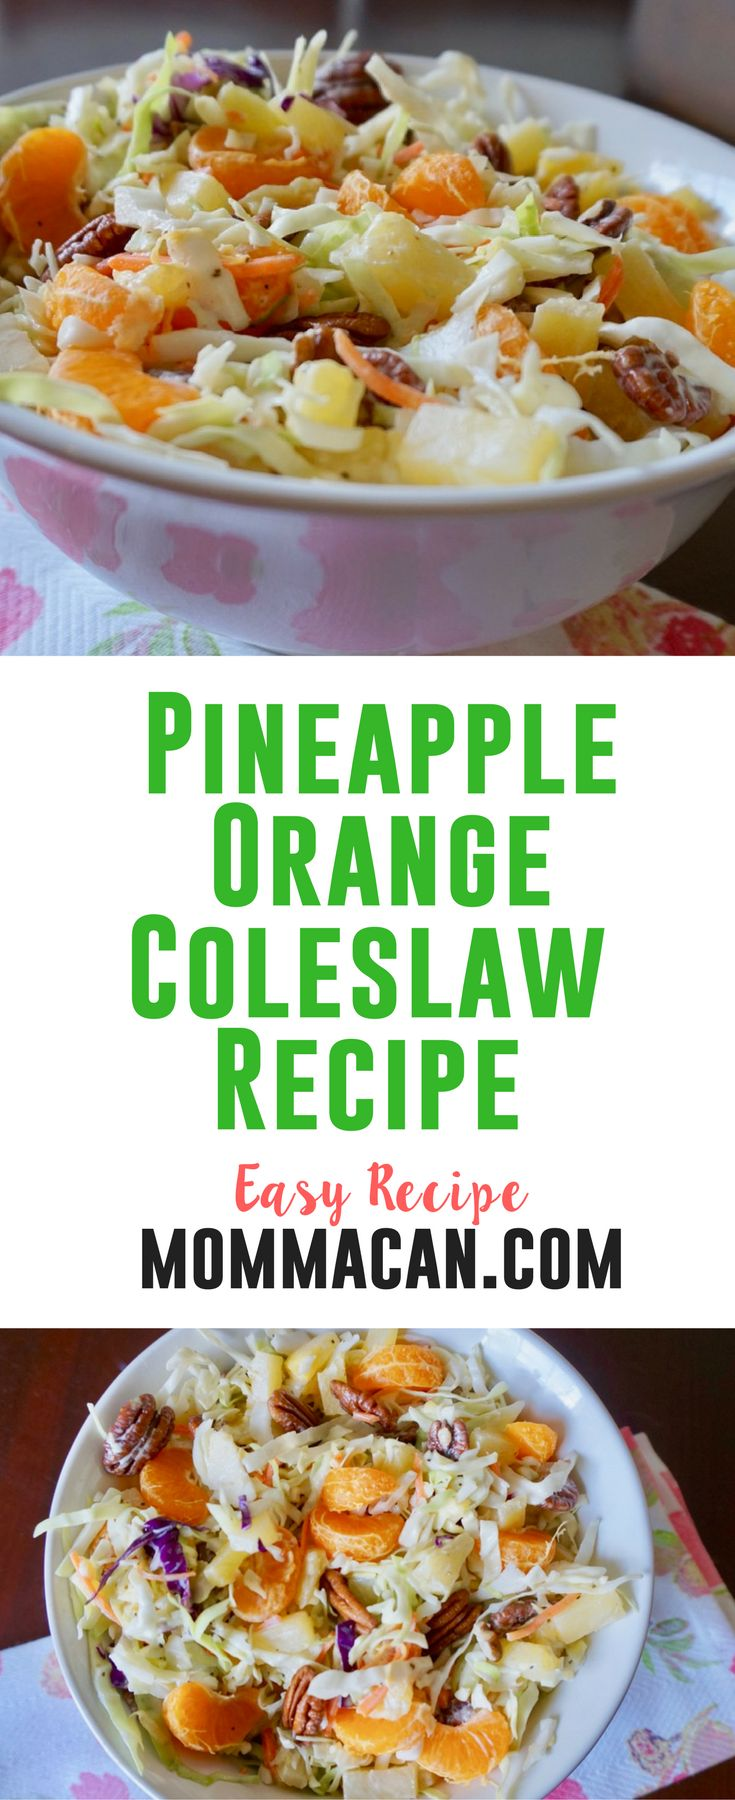 Coleslaw Recipe with Pineapple, Oranges and Crunchy Pecans! You are going to love this!